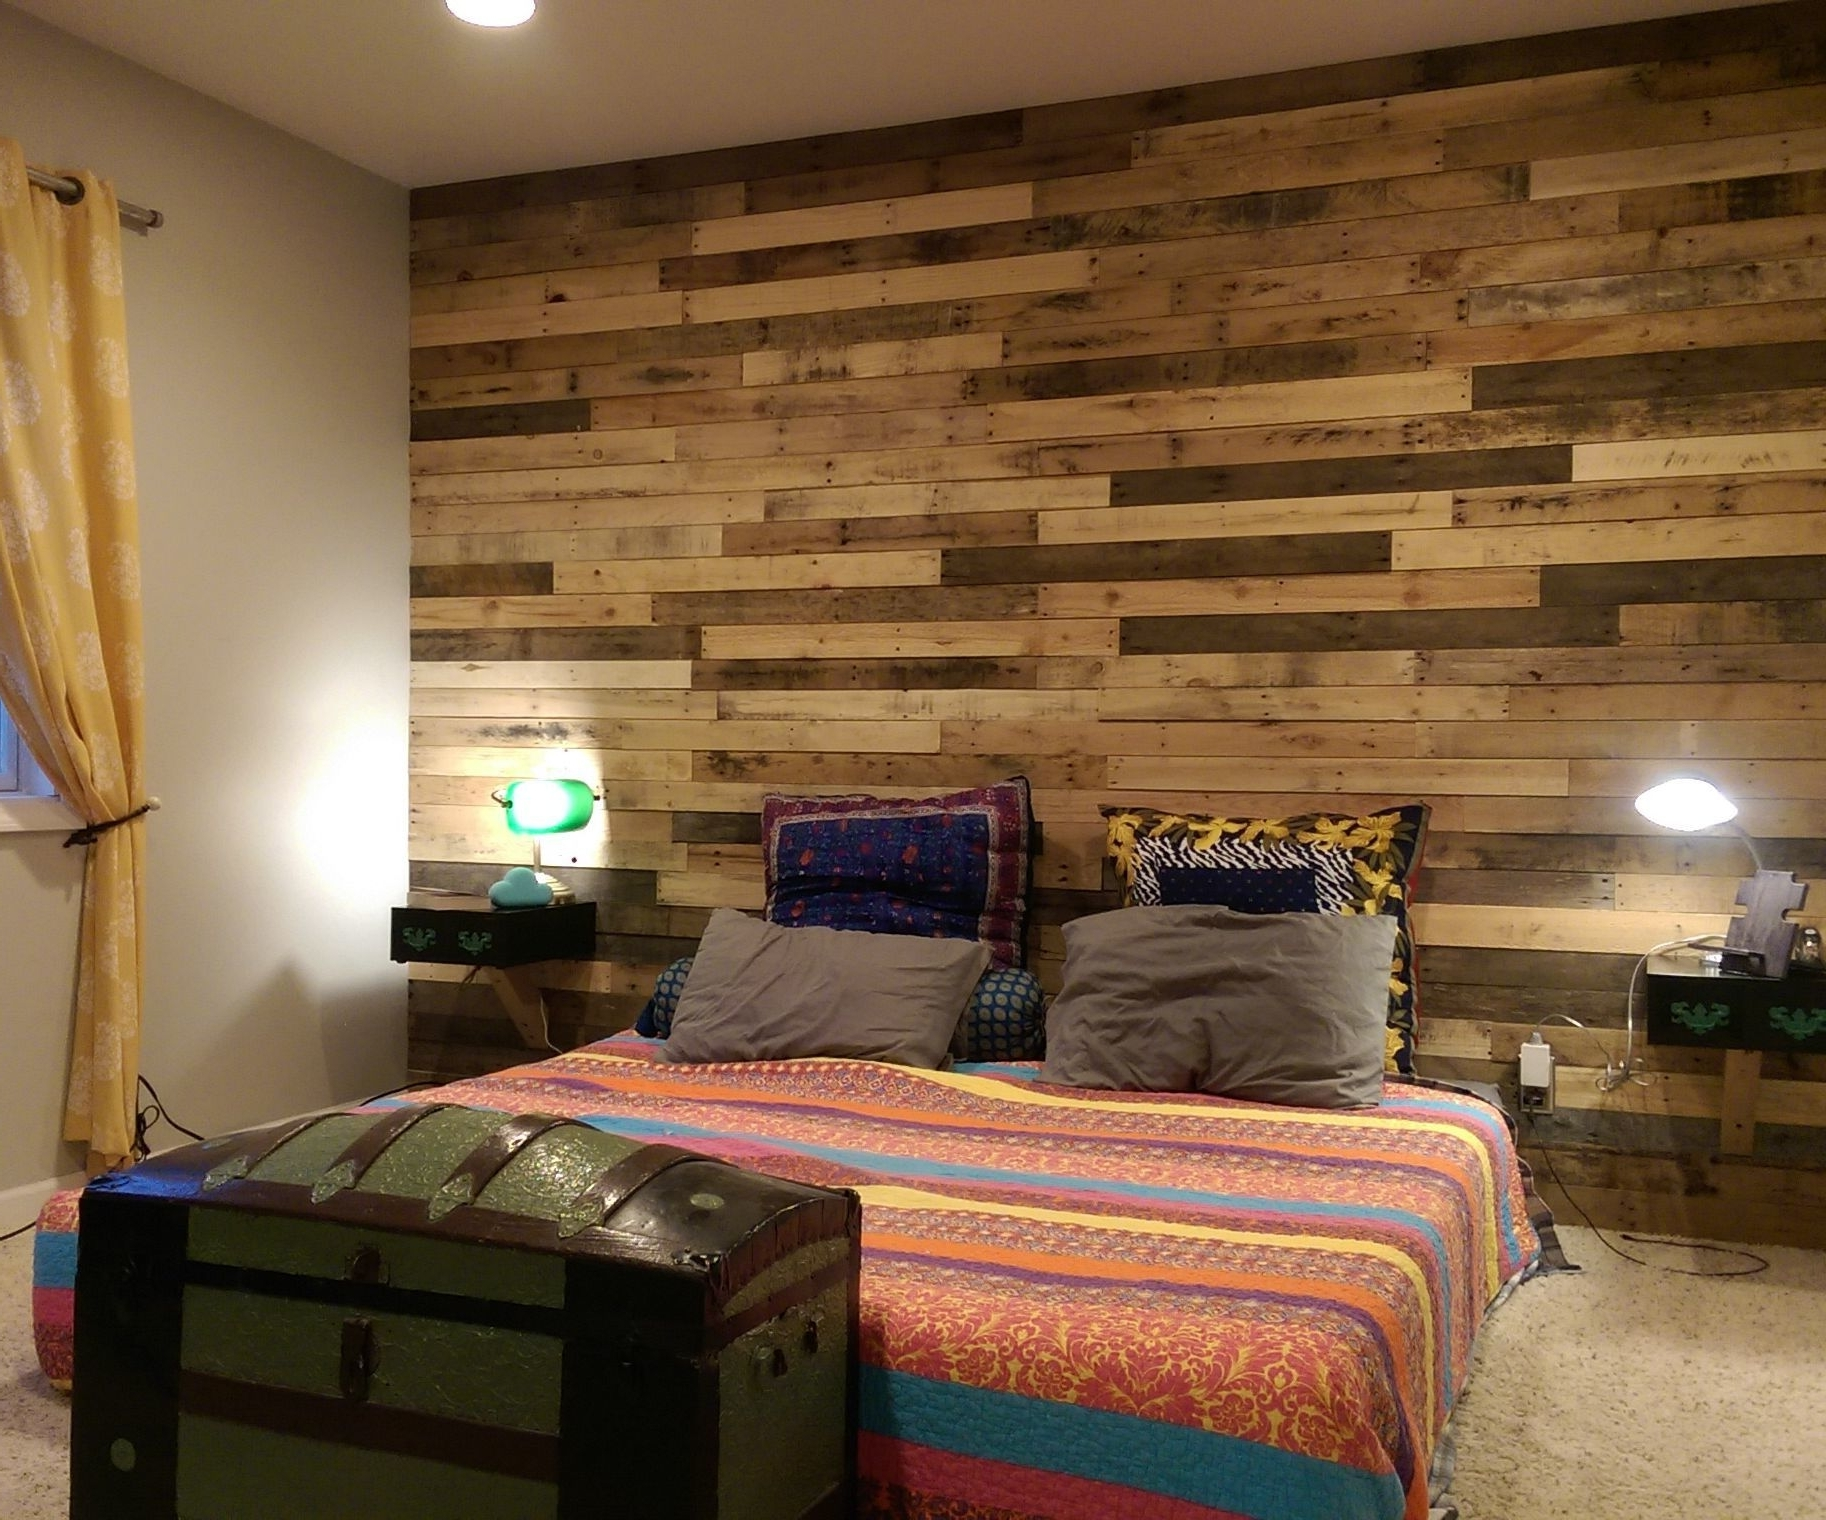 Pallet Accent Wall: 4 Steps (with Pictures) In Famous Wall Accents For Bedroom (View 10 of 15)